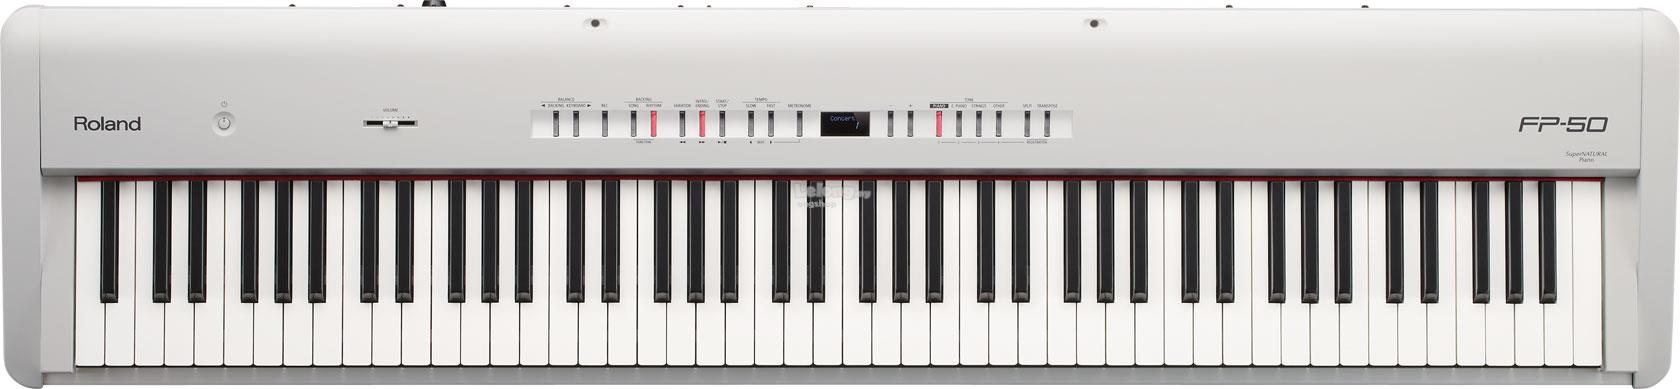 Roland Digital Piano FP-50 White